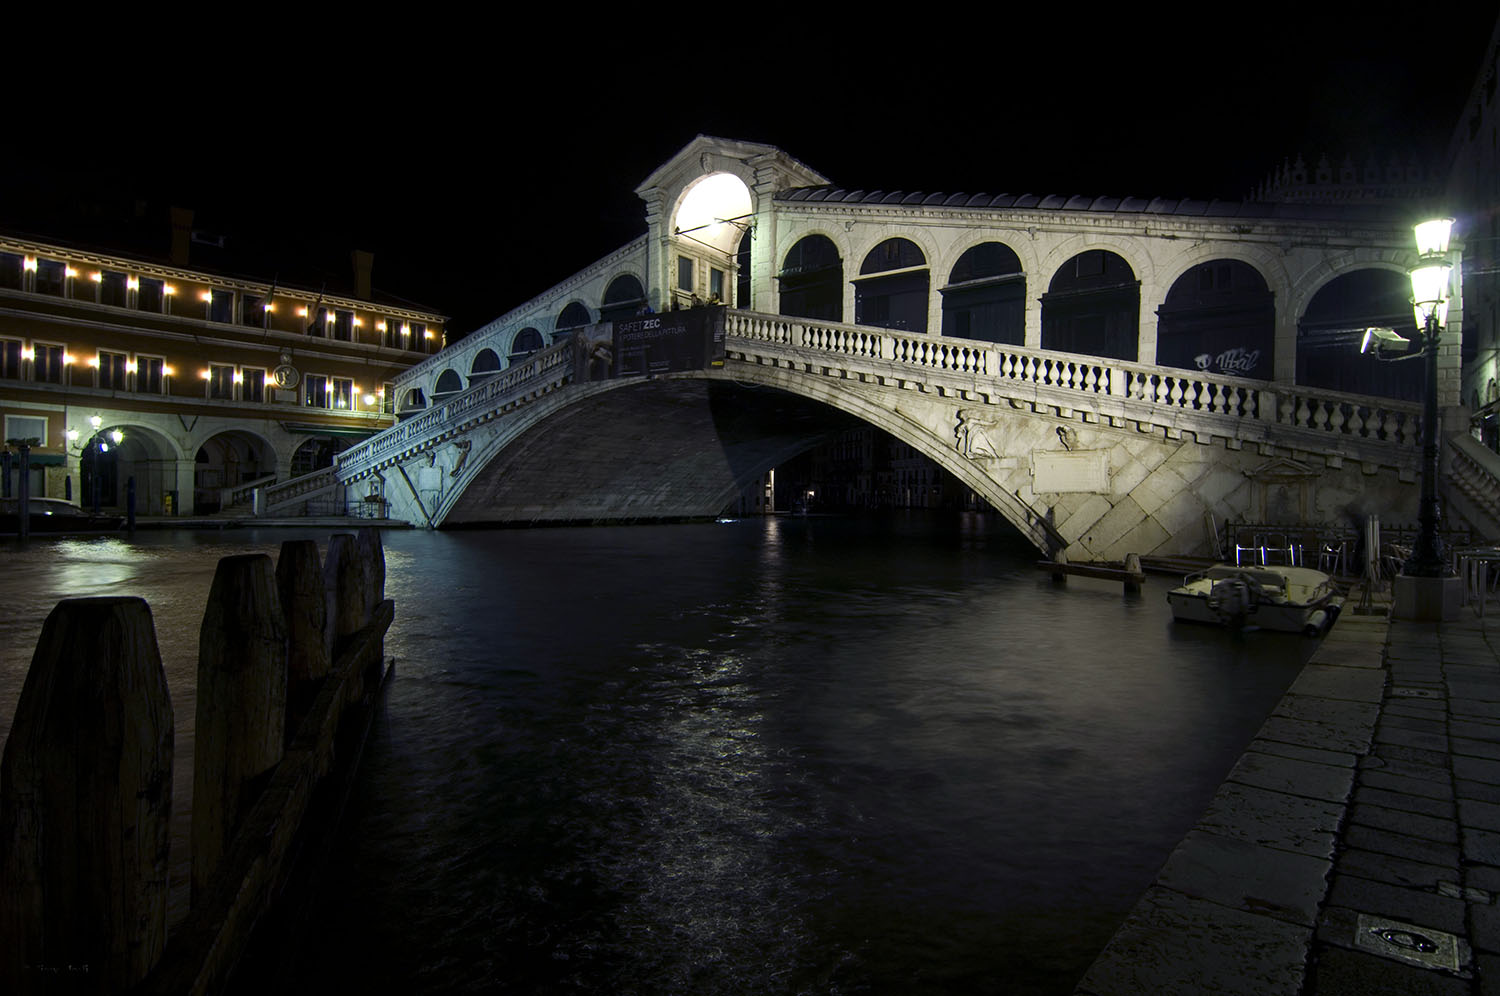 Italy / Venice / Rialto bridge by night